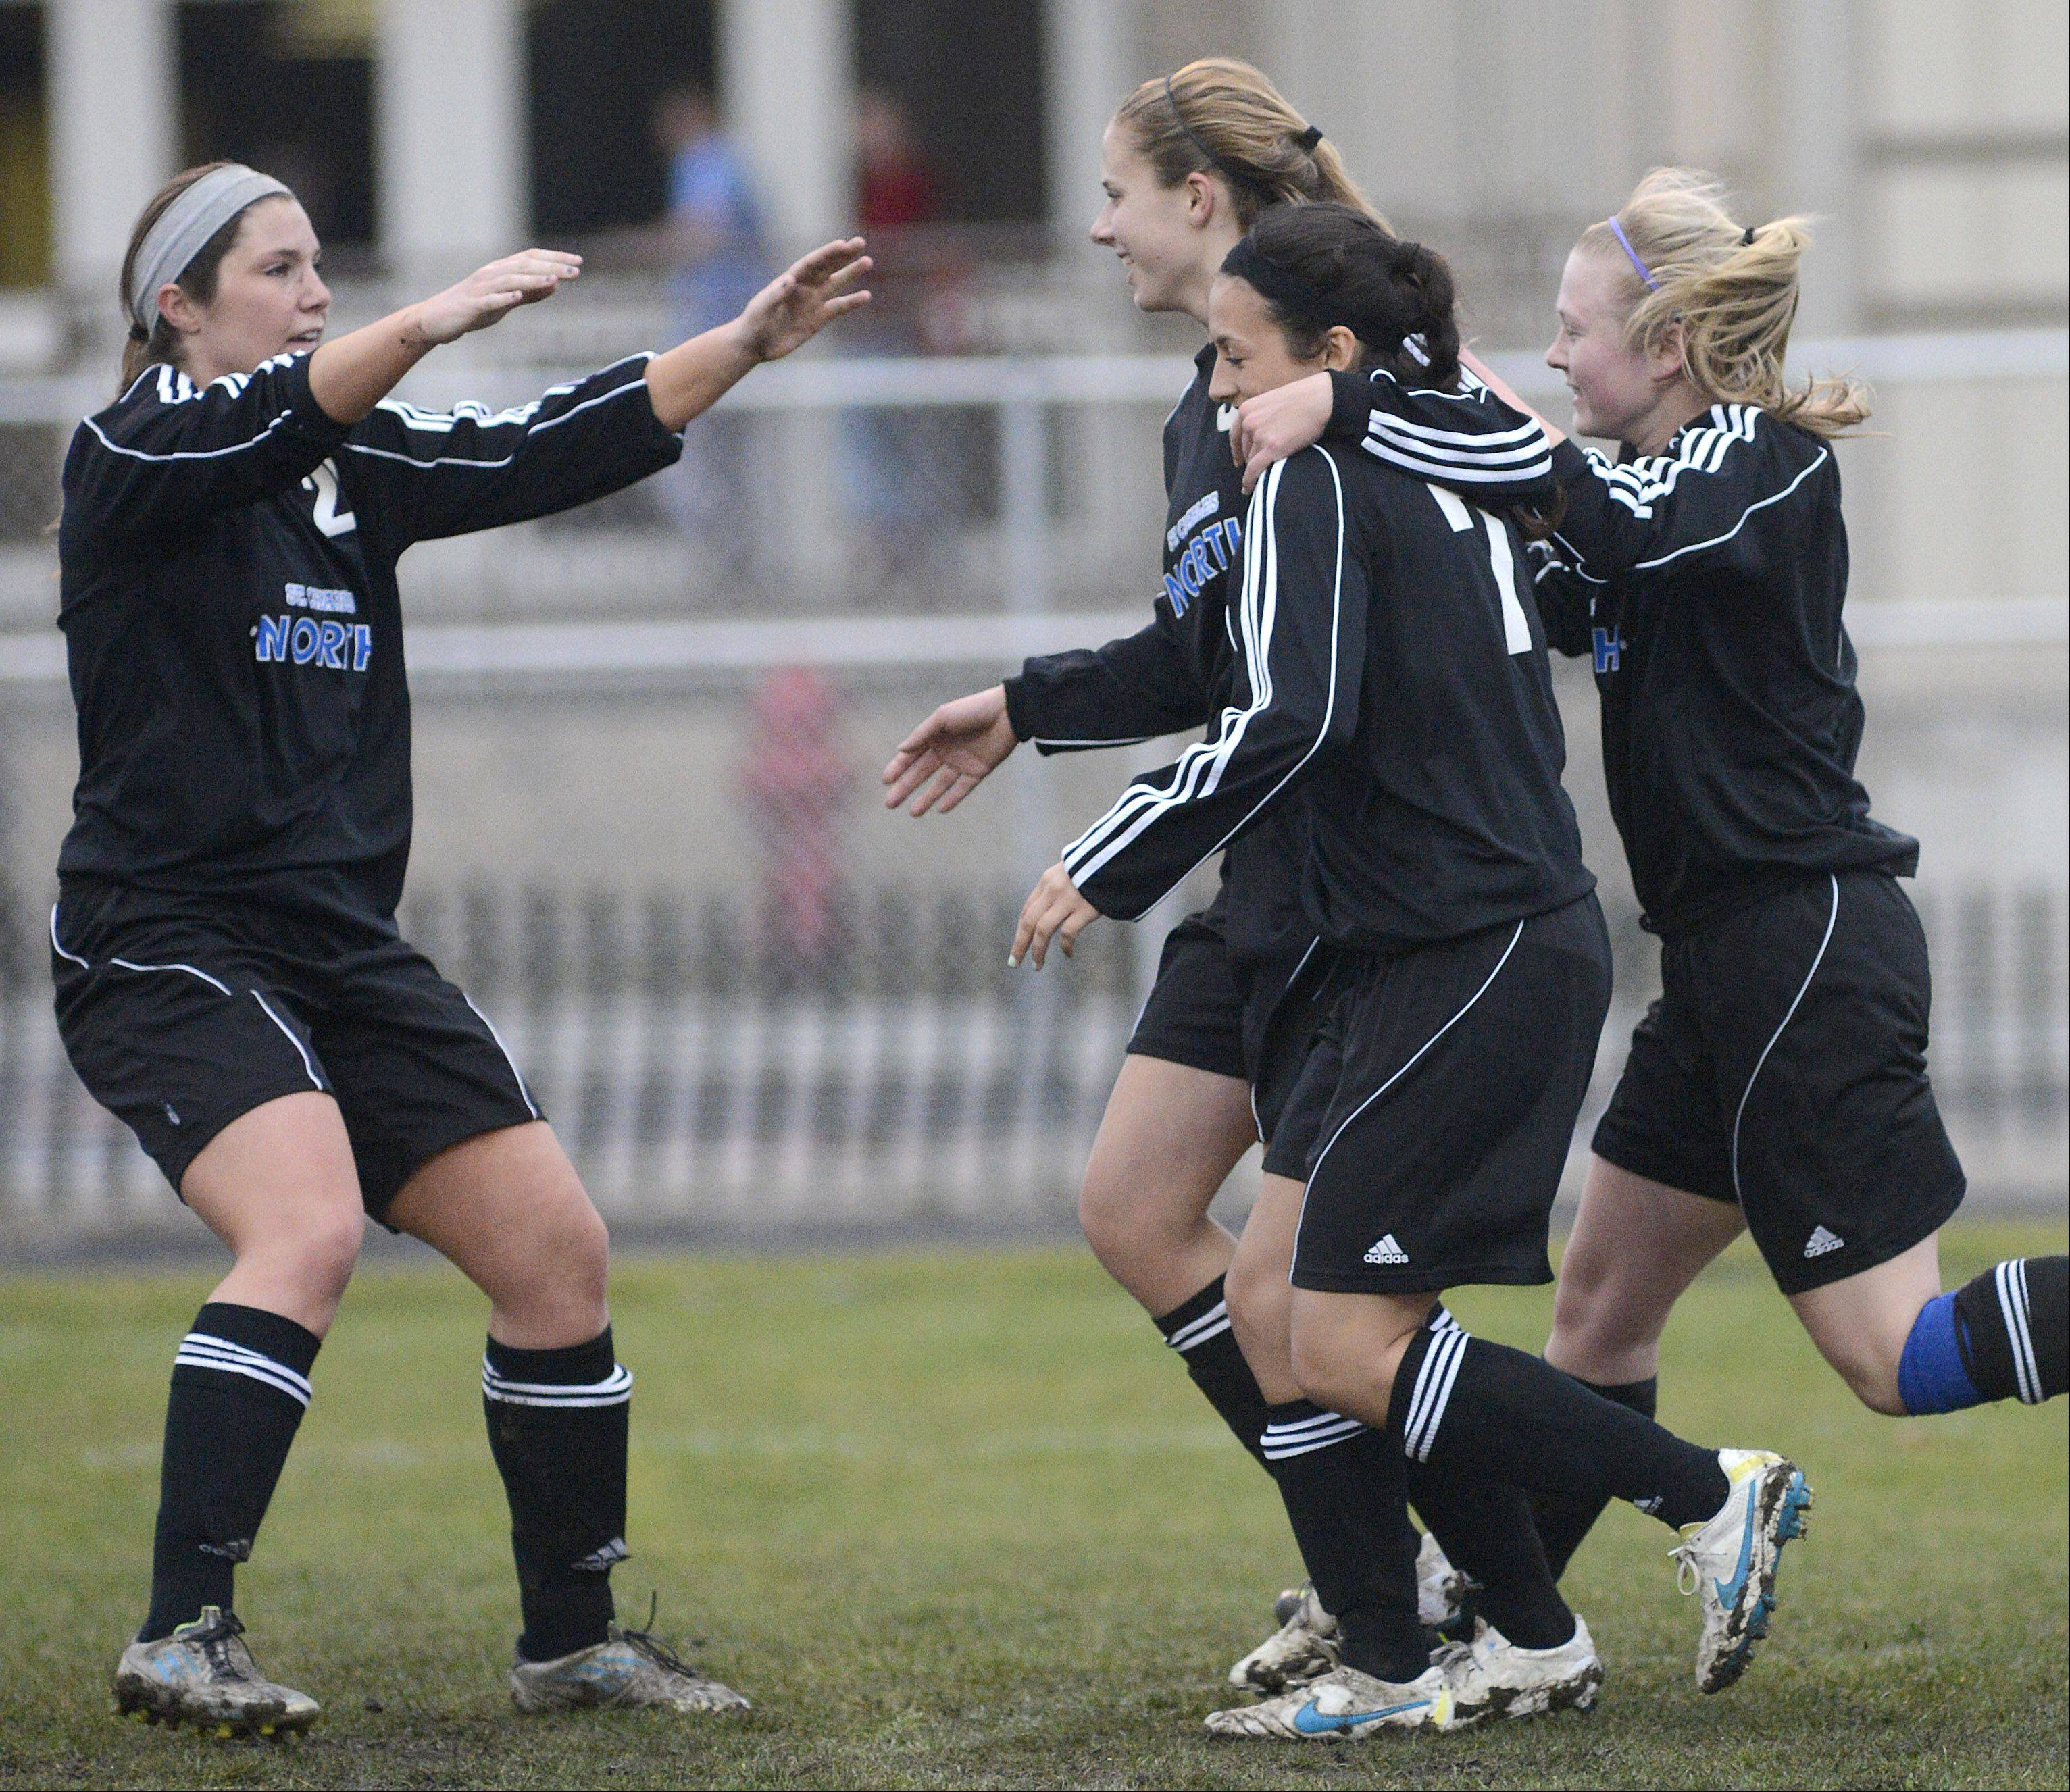 St. Charles North's Kenzie Rose, left, congratulates Alyssa Brandt, center, after her goal in the first half as she runs back to center field flanked by Ashlyn Walter and Natalie Winkates on Thursday, April 11.